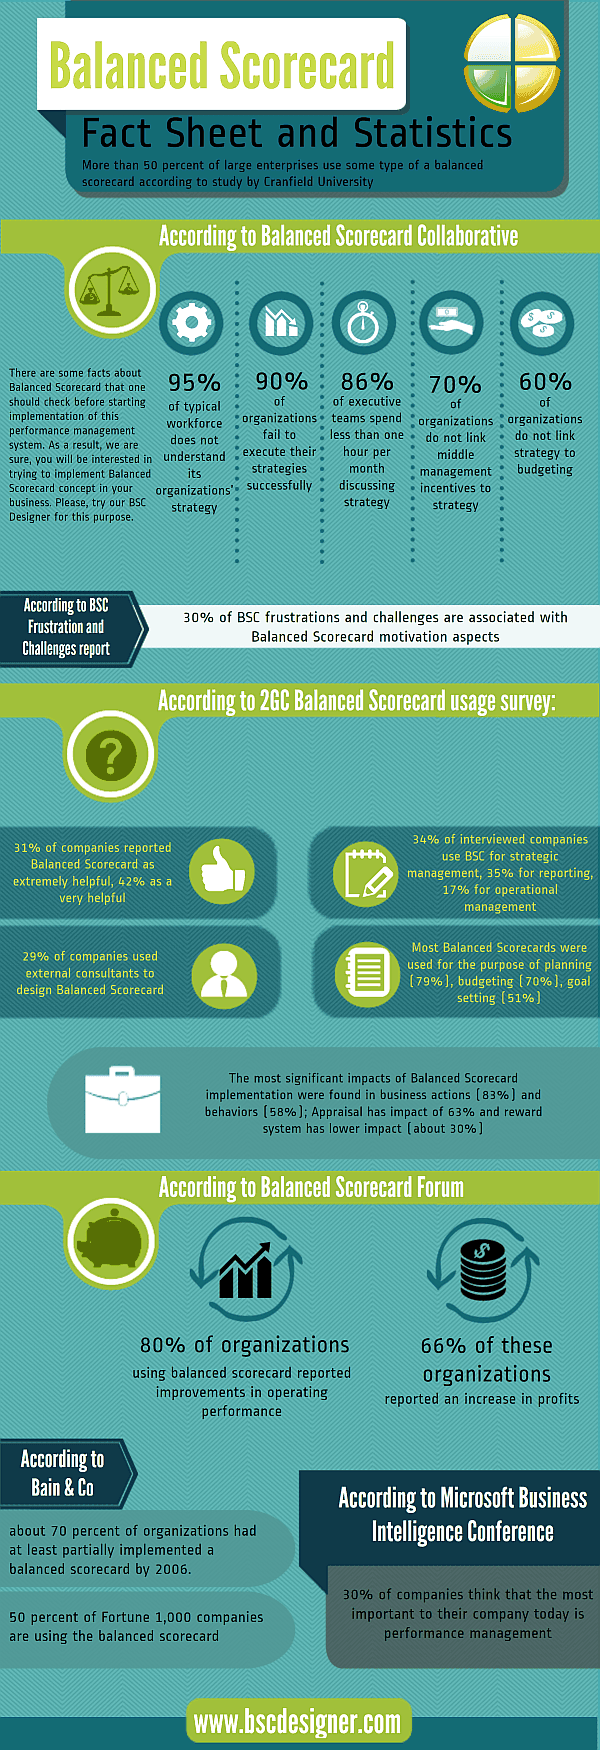 Infographic for the Balanced Scorecard Concept